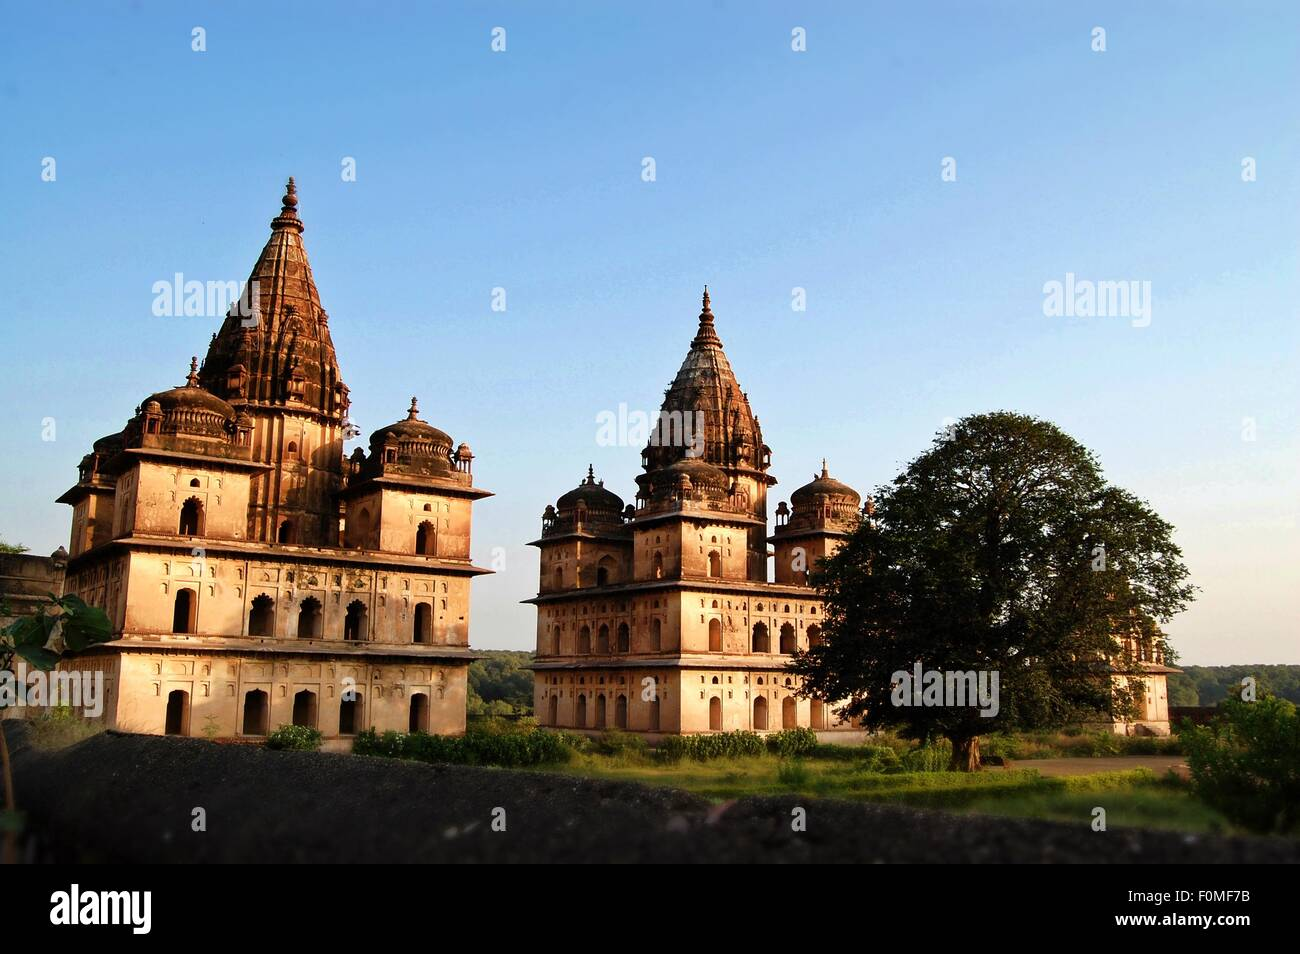 Chhatris or cenotaphs near the banks of the River Betwa in Orchha India - Stock Image